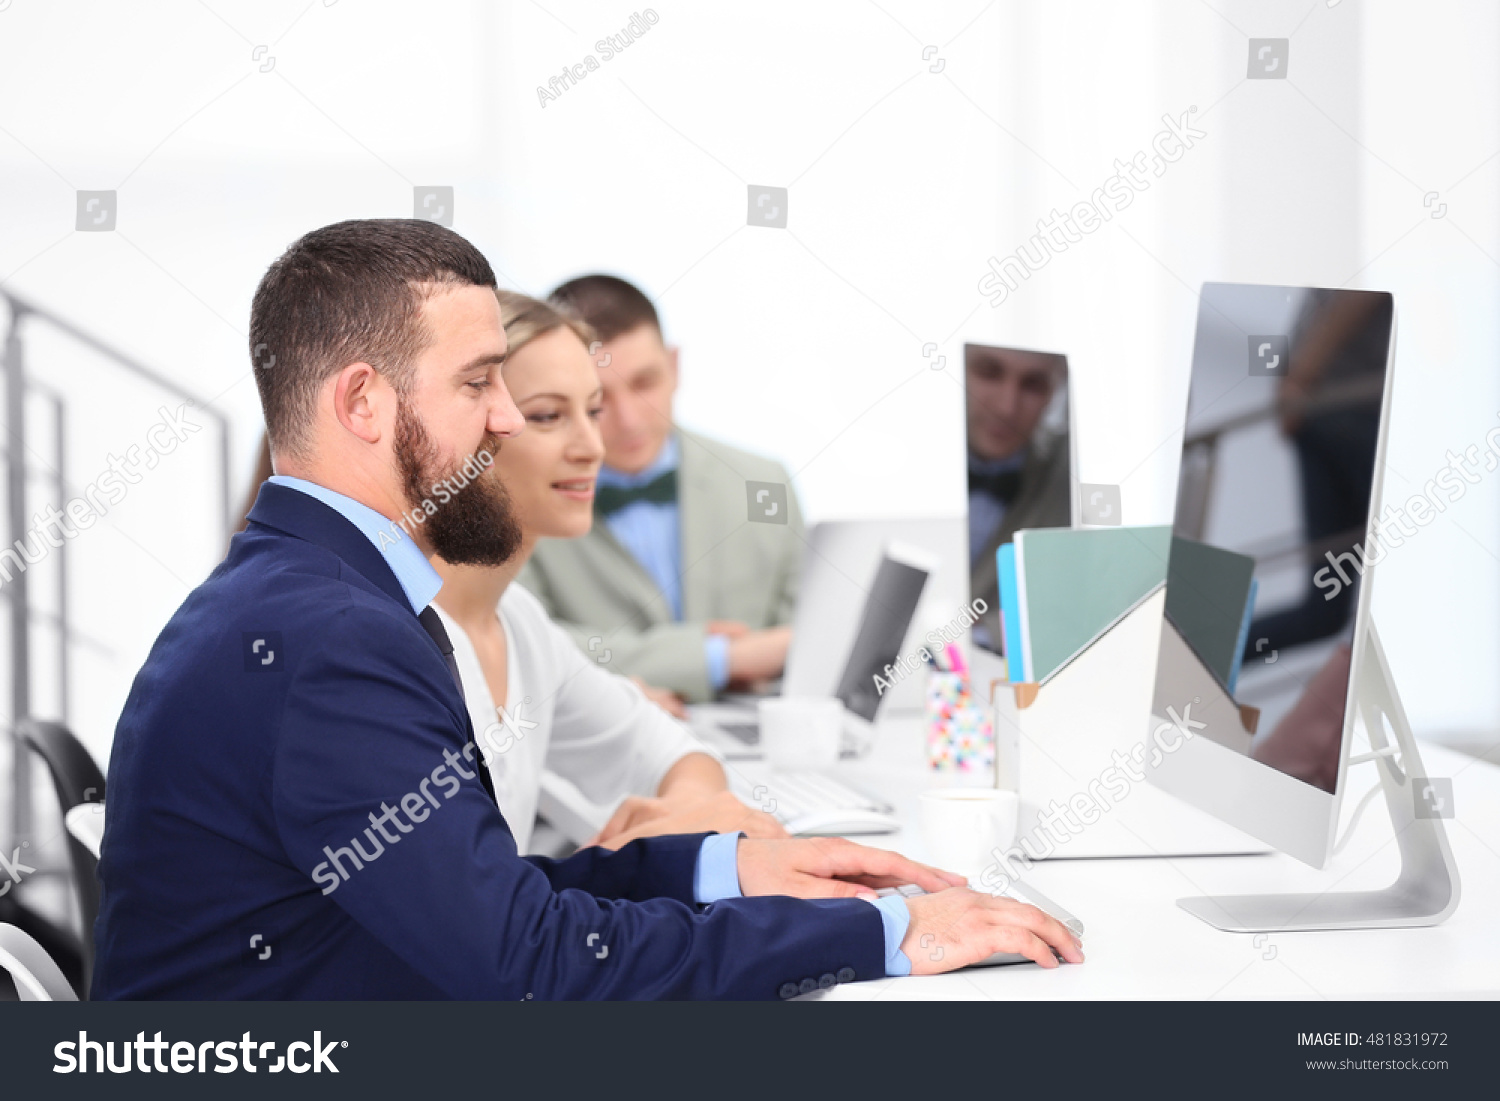 People Working On Computers Office Stock Photo 481831972 ...